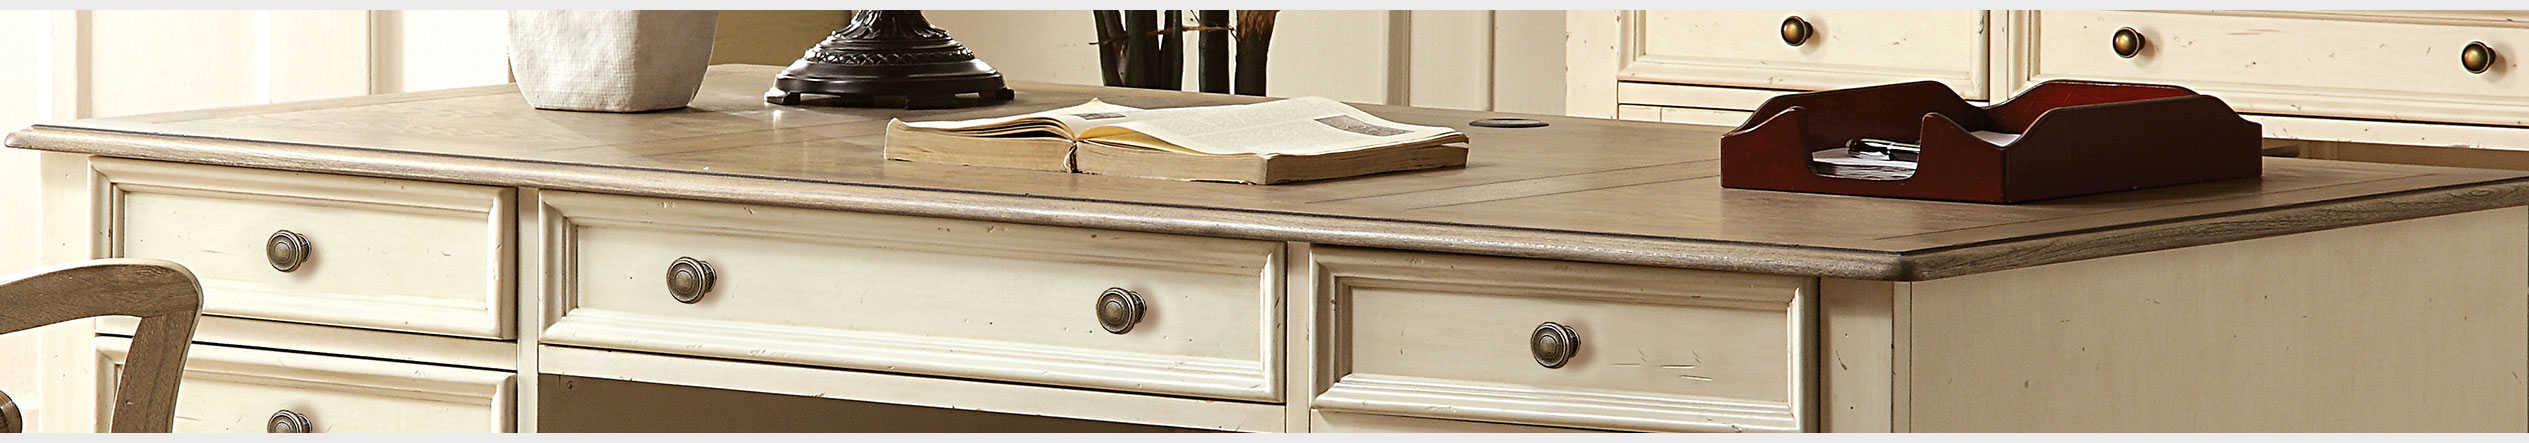 Shop Home Office Desks at Jordan's Furniture stores in CT, MA, ME, NH, ME,  and RI